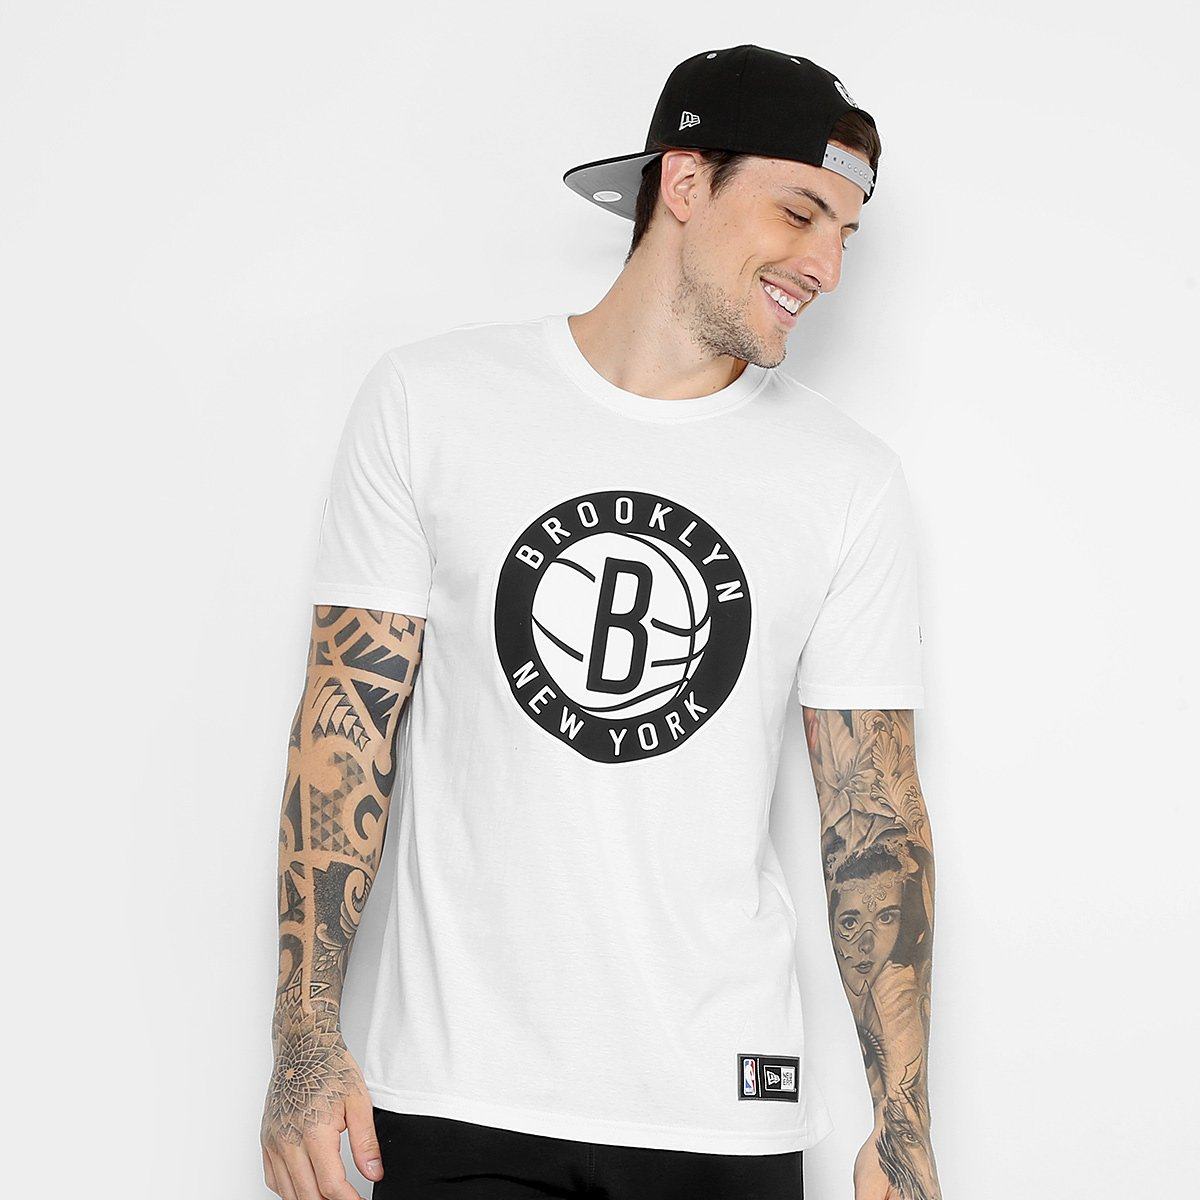 e42a6f1837 Camiseta NBA Brooklyn Nets New Era Masculina | Loja NBA